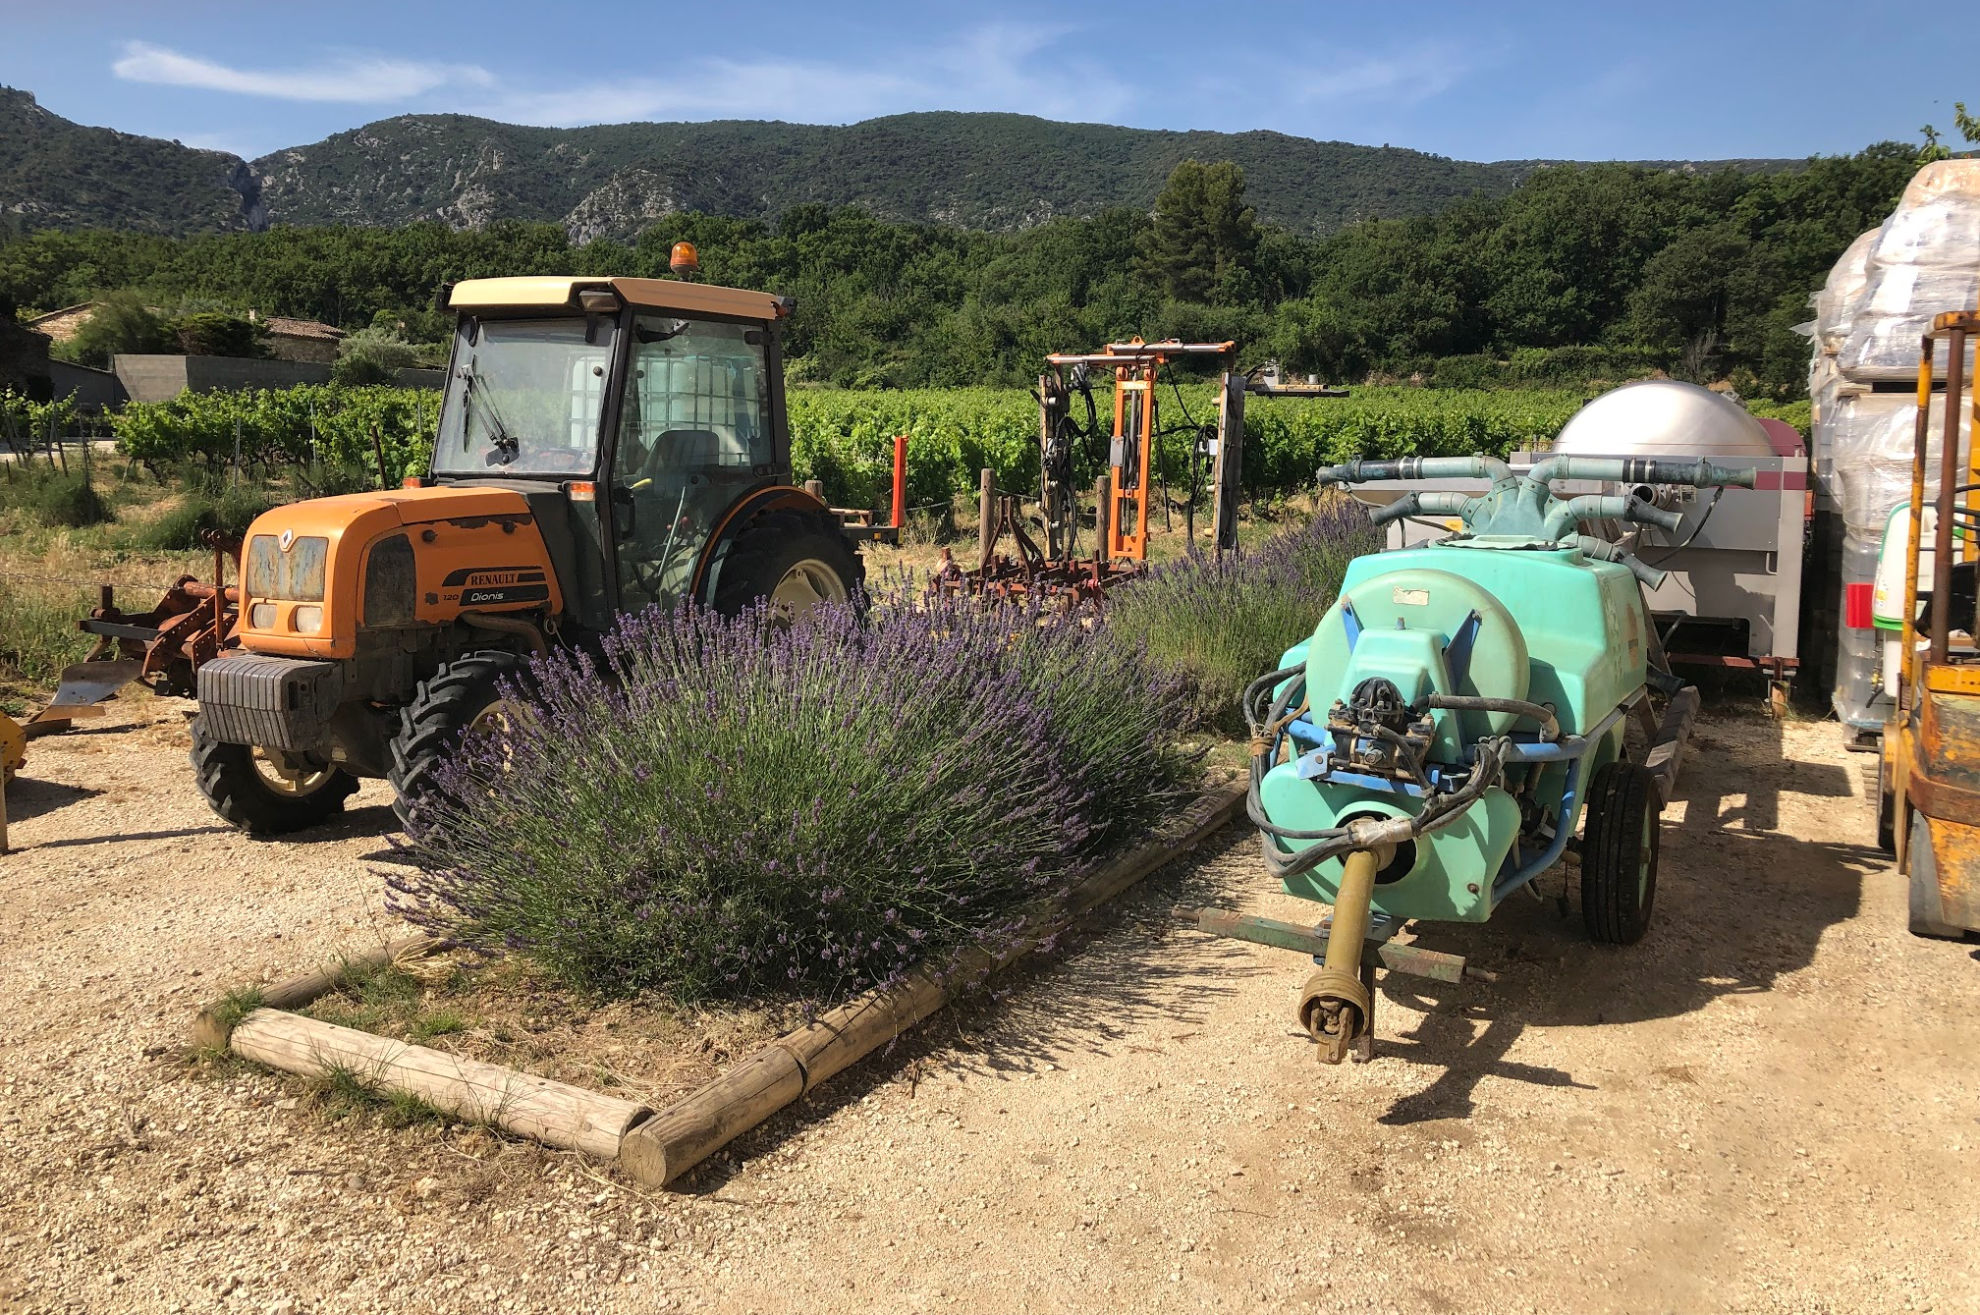 The machinery having a well-deserved rest at the Domaine Des Jeanne Vineyard